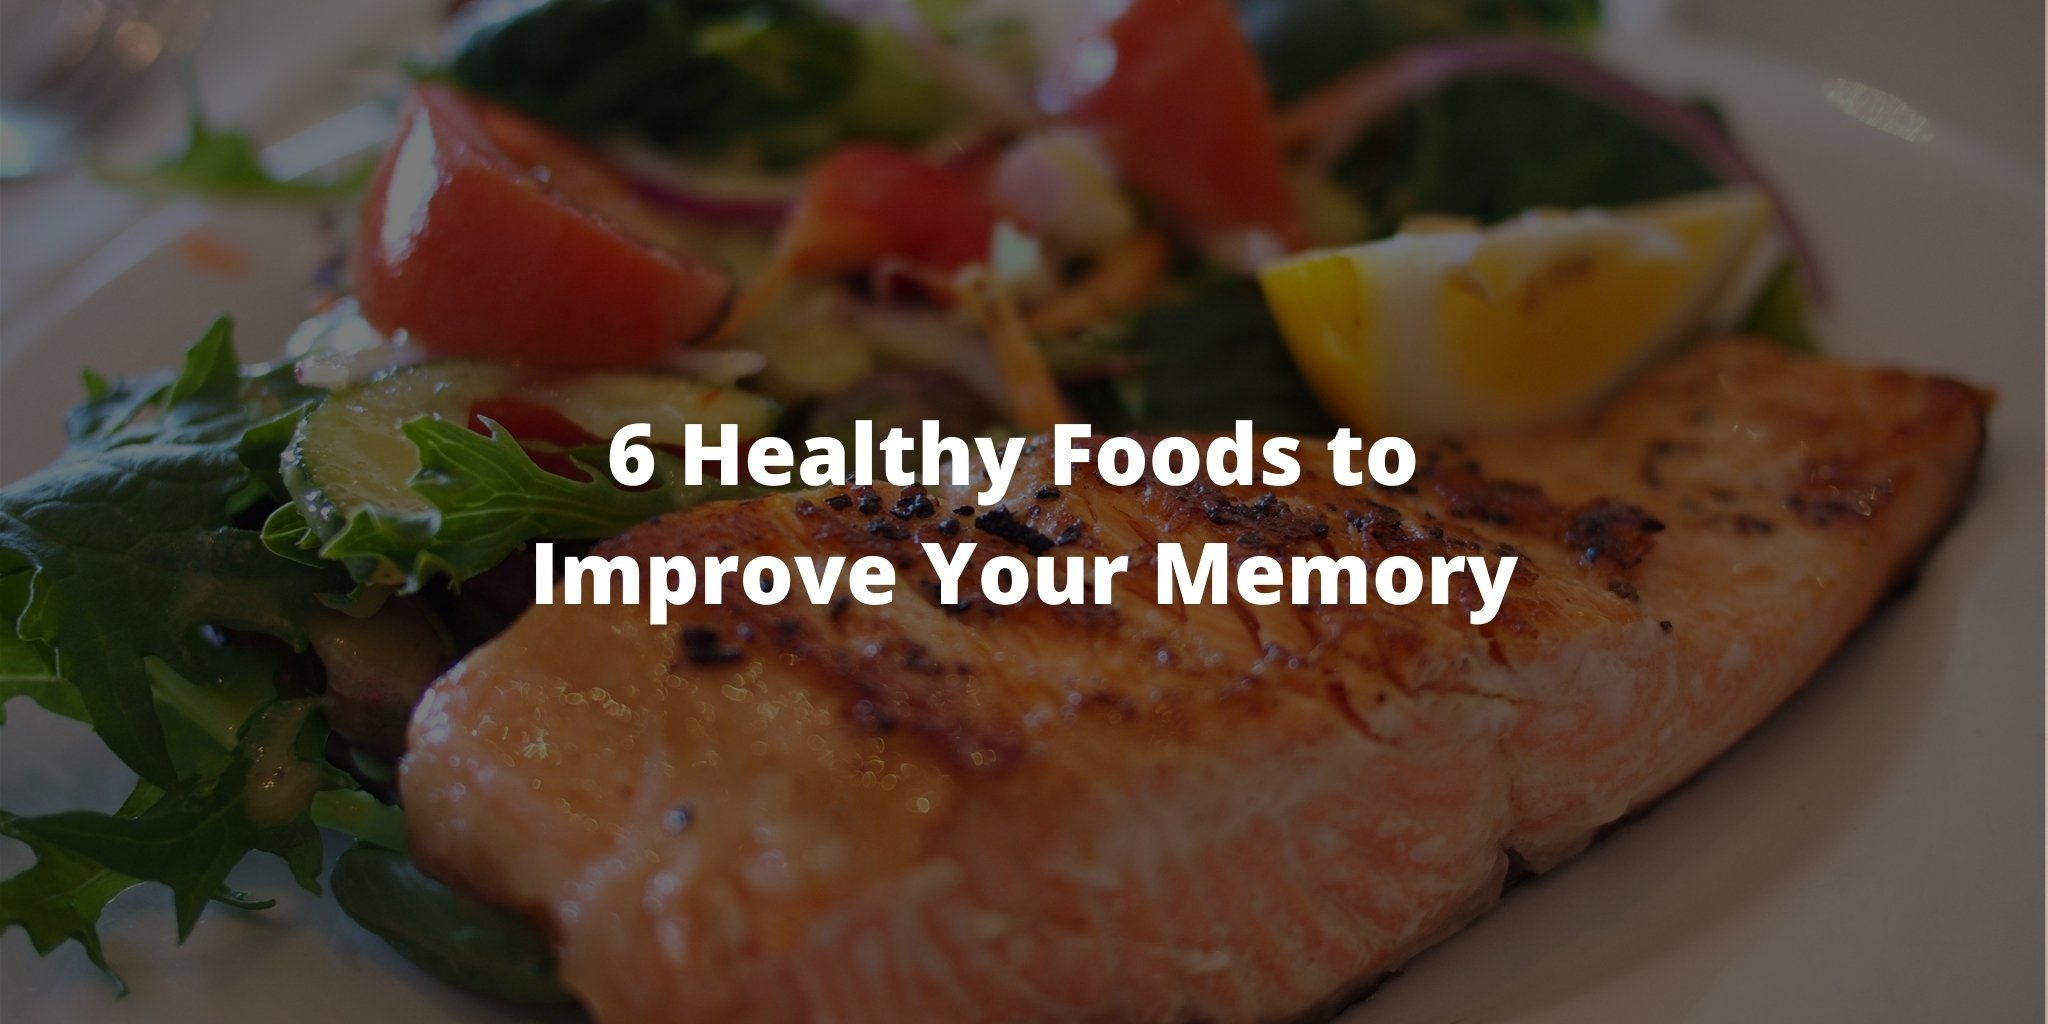 6 Healthy Foods to Improve Your Memory